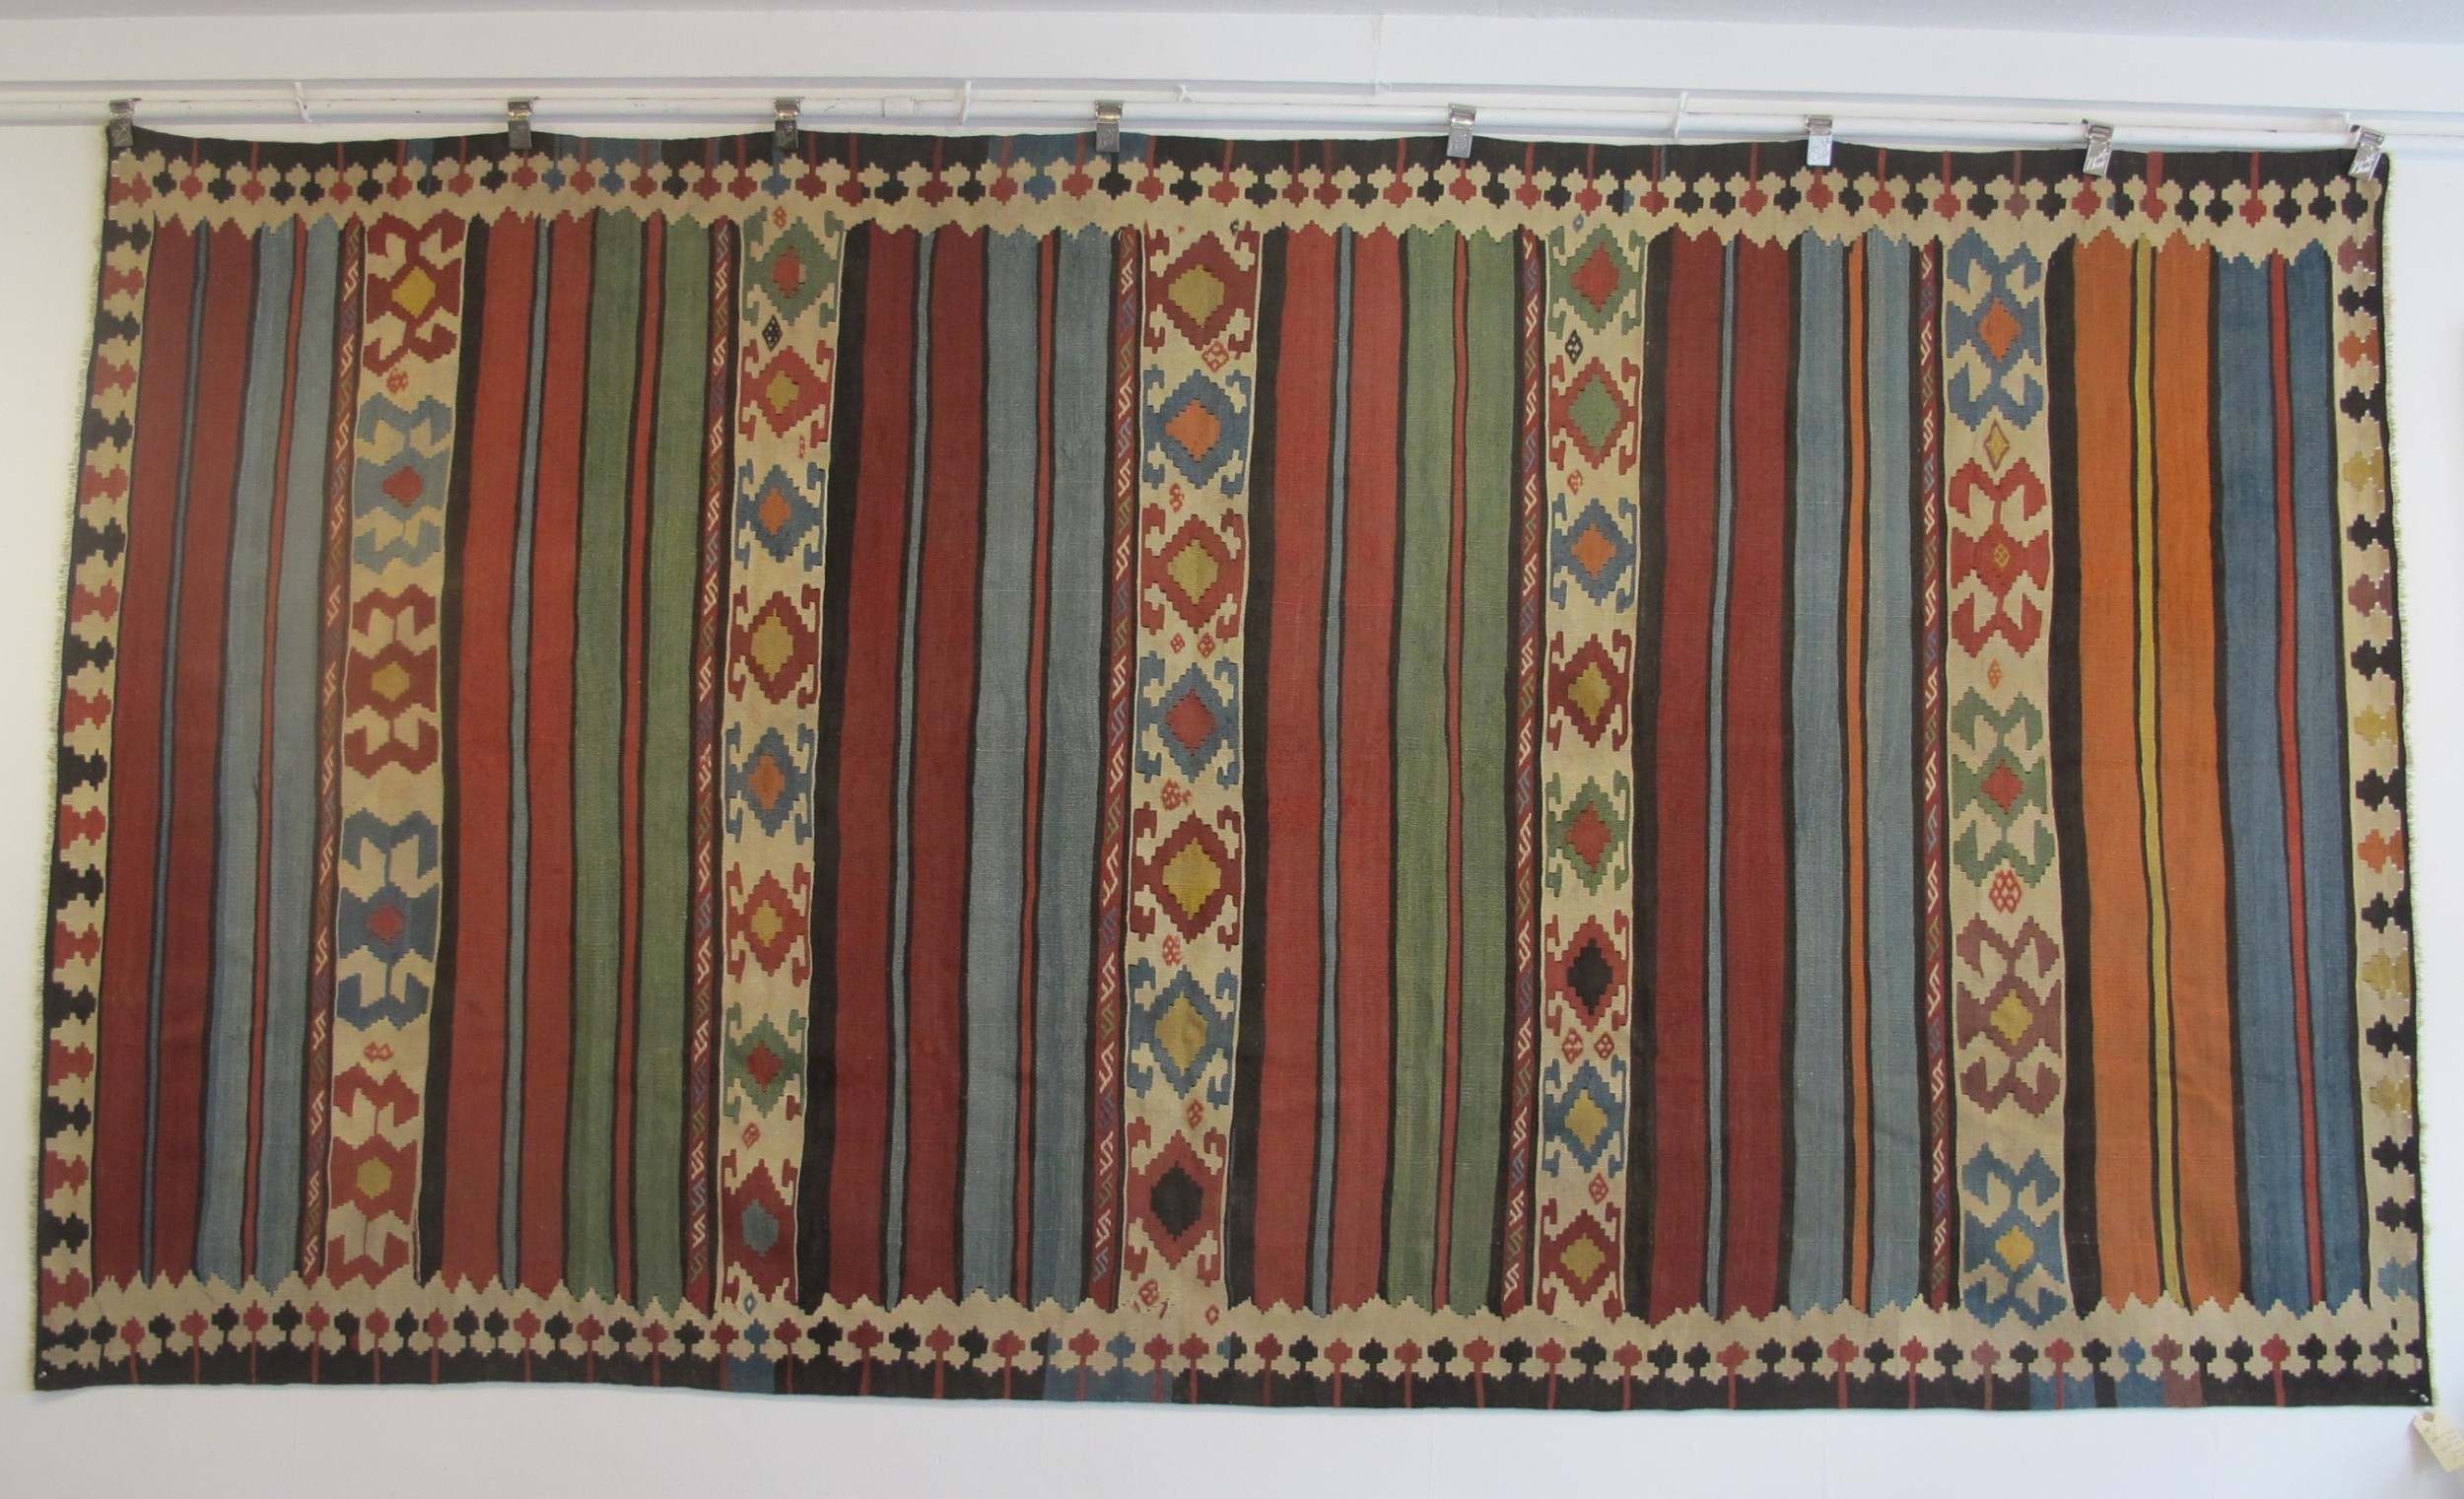 dramatic antique persian kilim 332m x 174m 10' 11 inches x 5' 9 inches